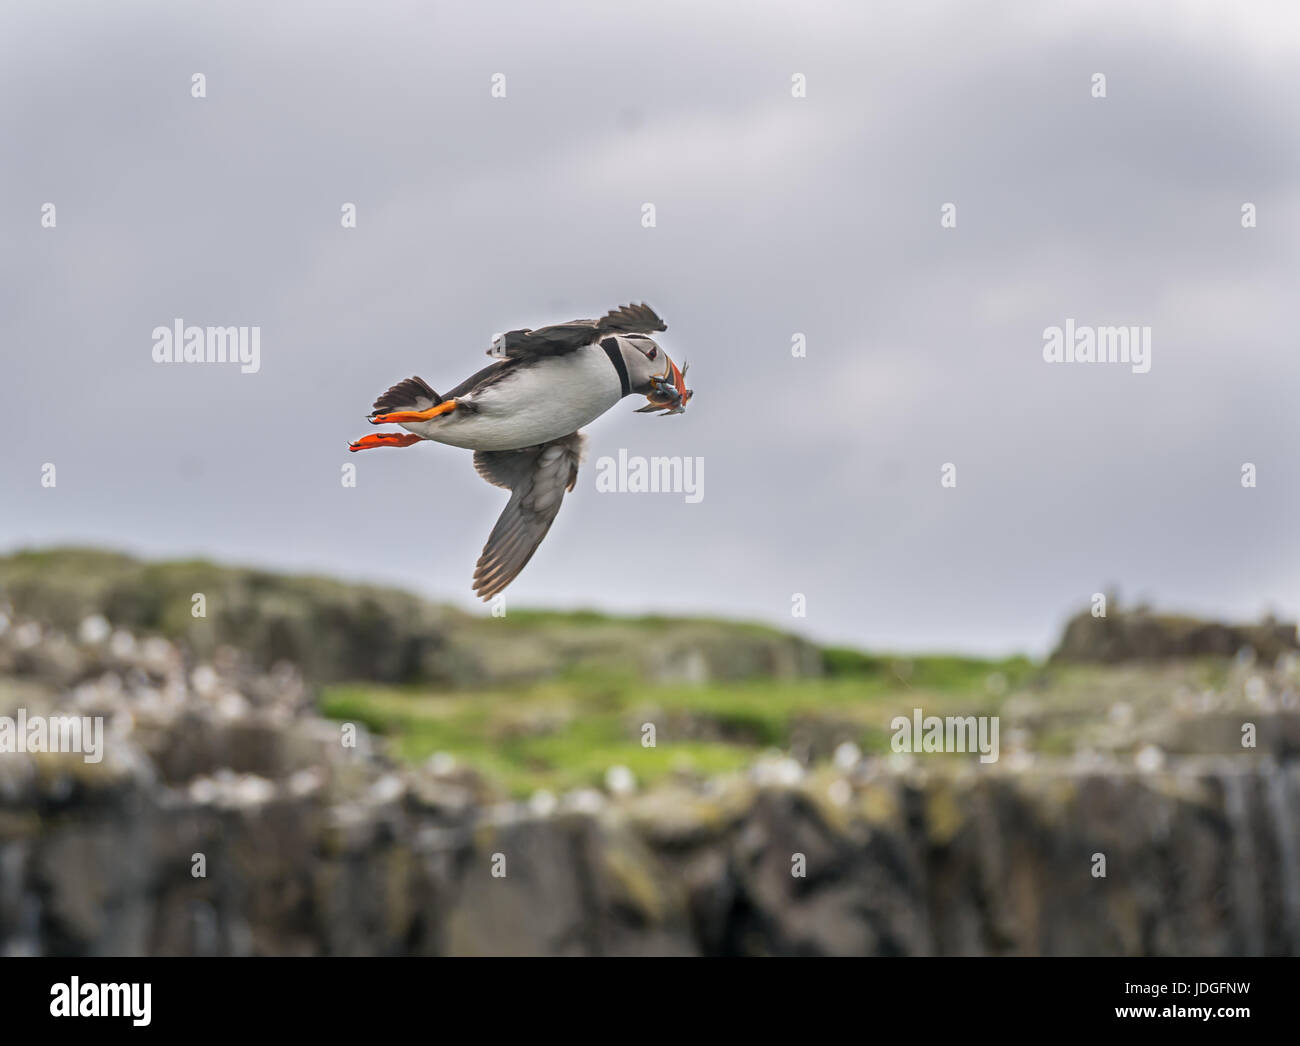 Puffin, Fratercula arctica, flying with sand eels in beak, Isle of May, Scotland, UK Stock Photo